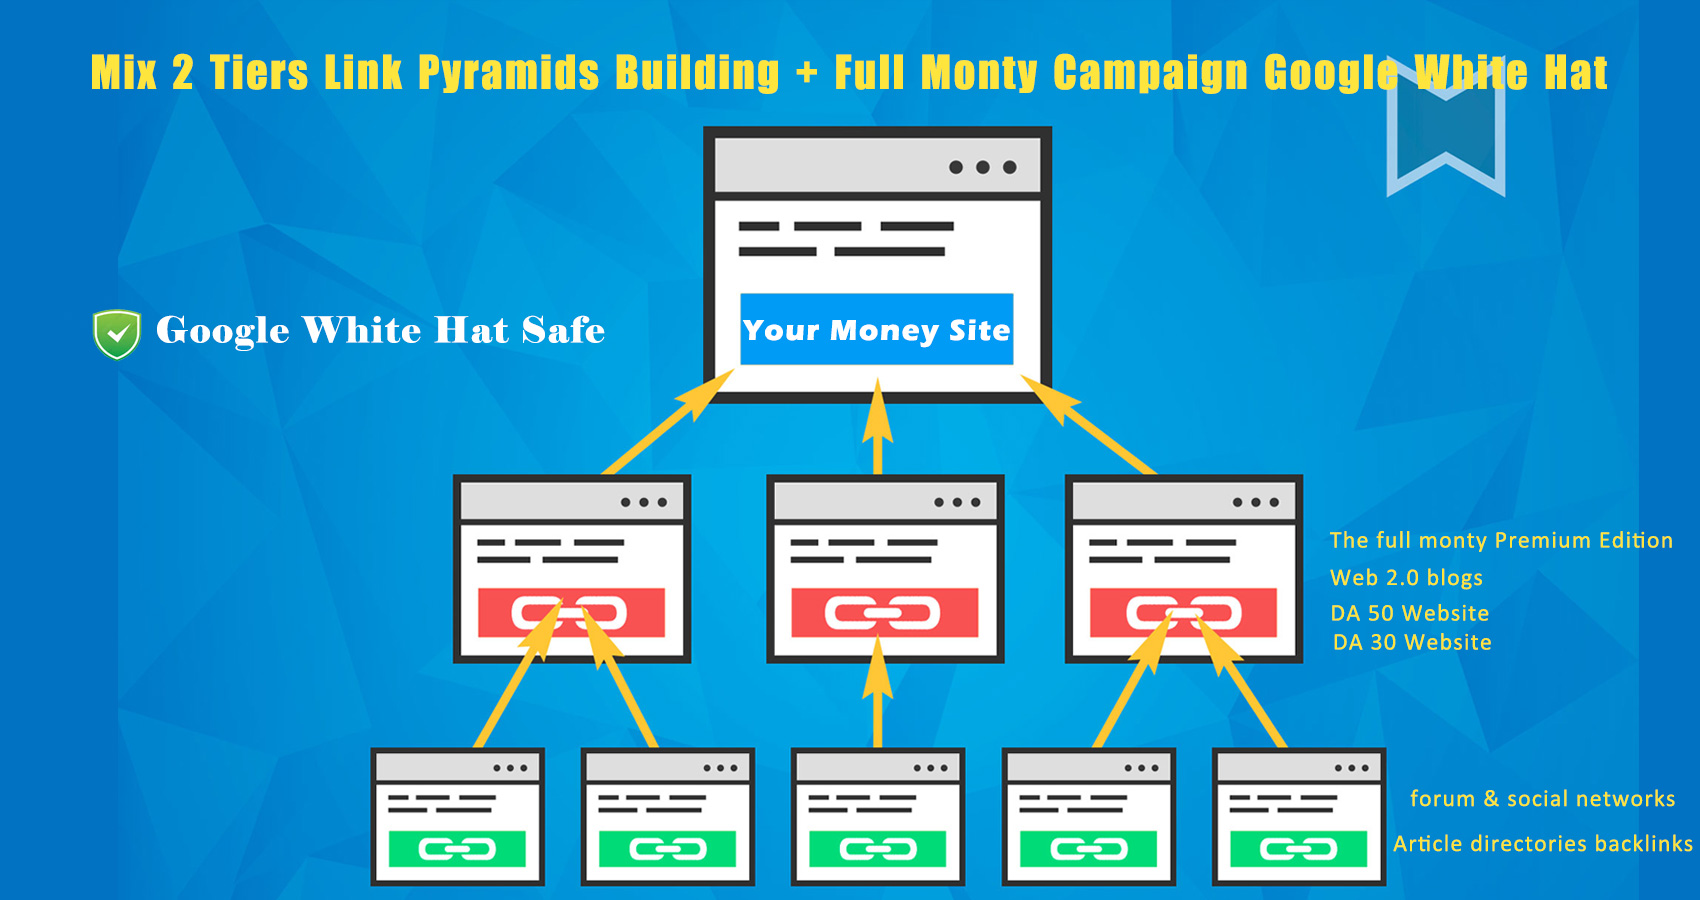 Mix 2 Tiers Link Pyramids Building + Full Monty SEO Campaign Google White Hat